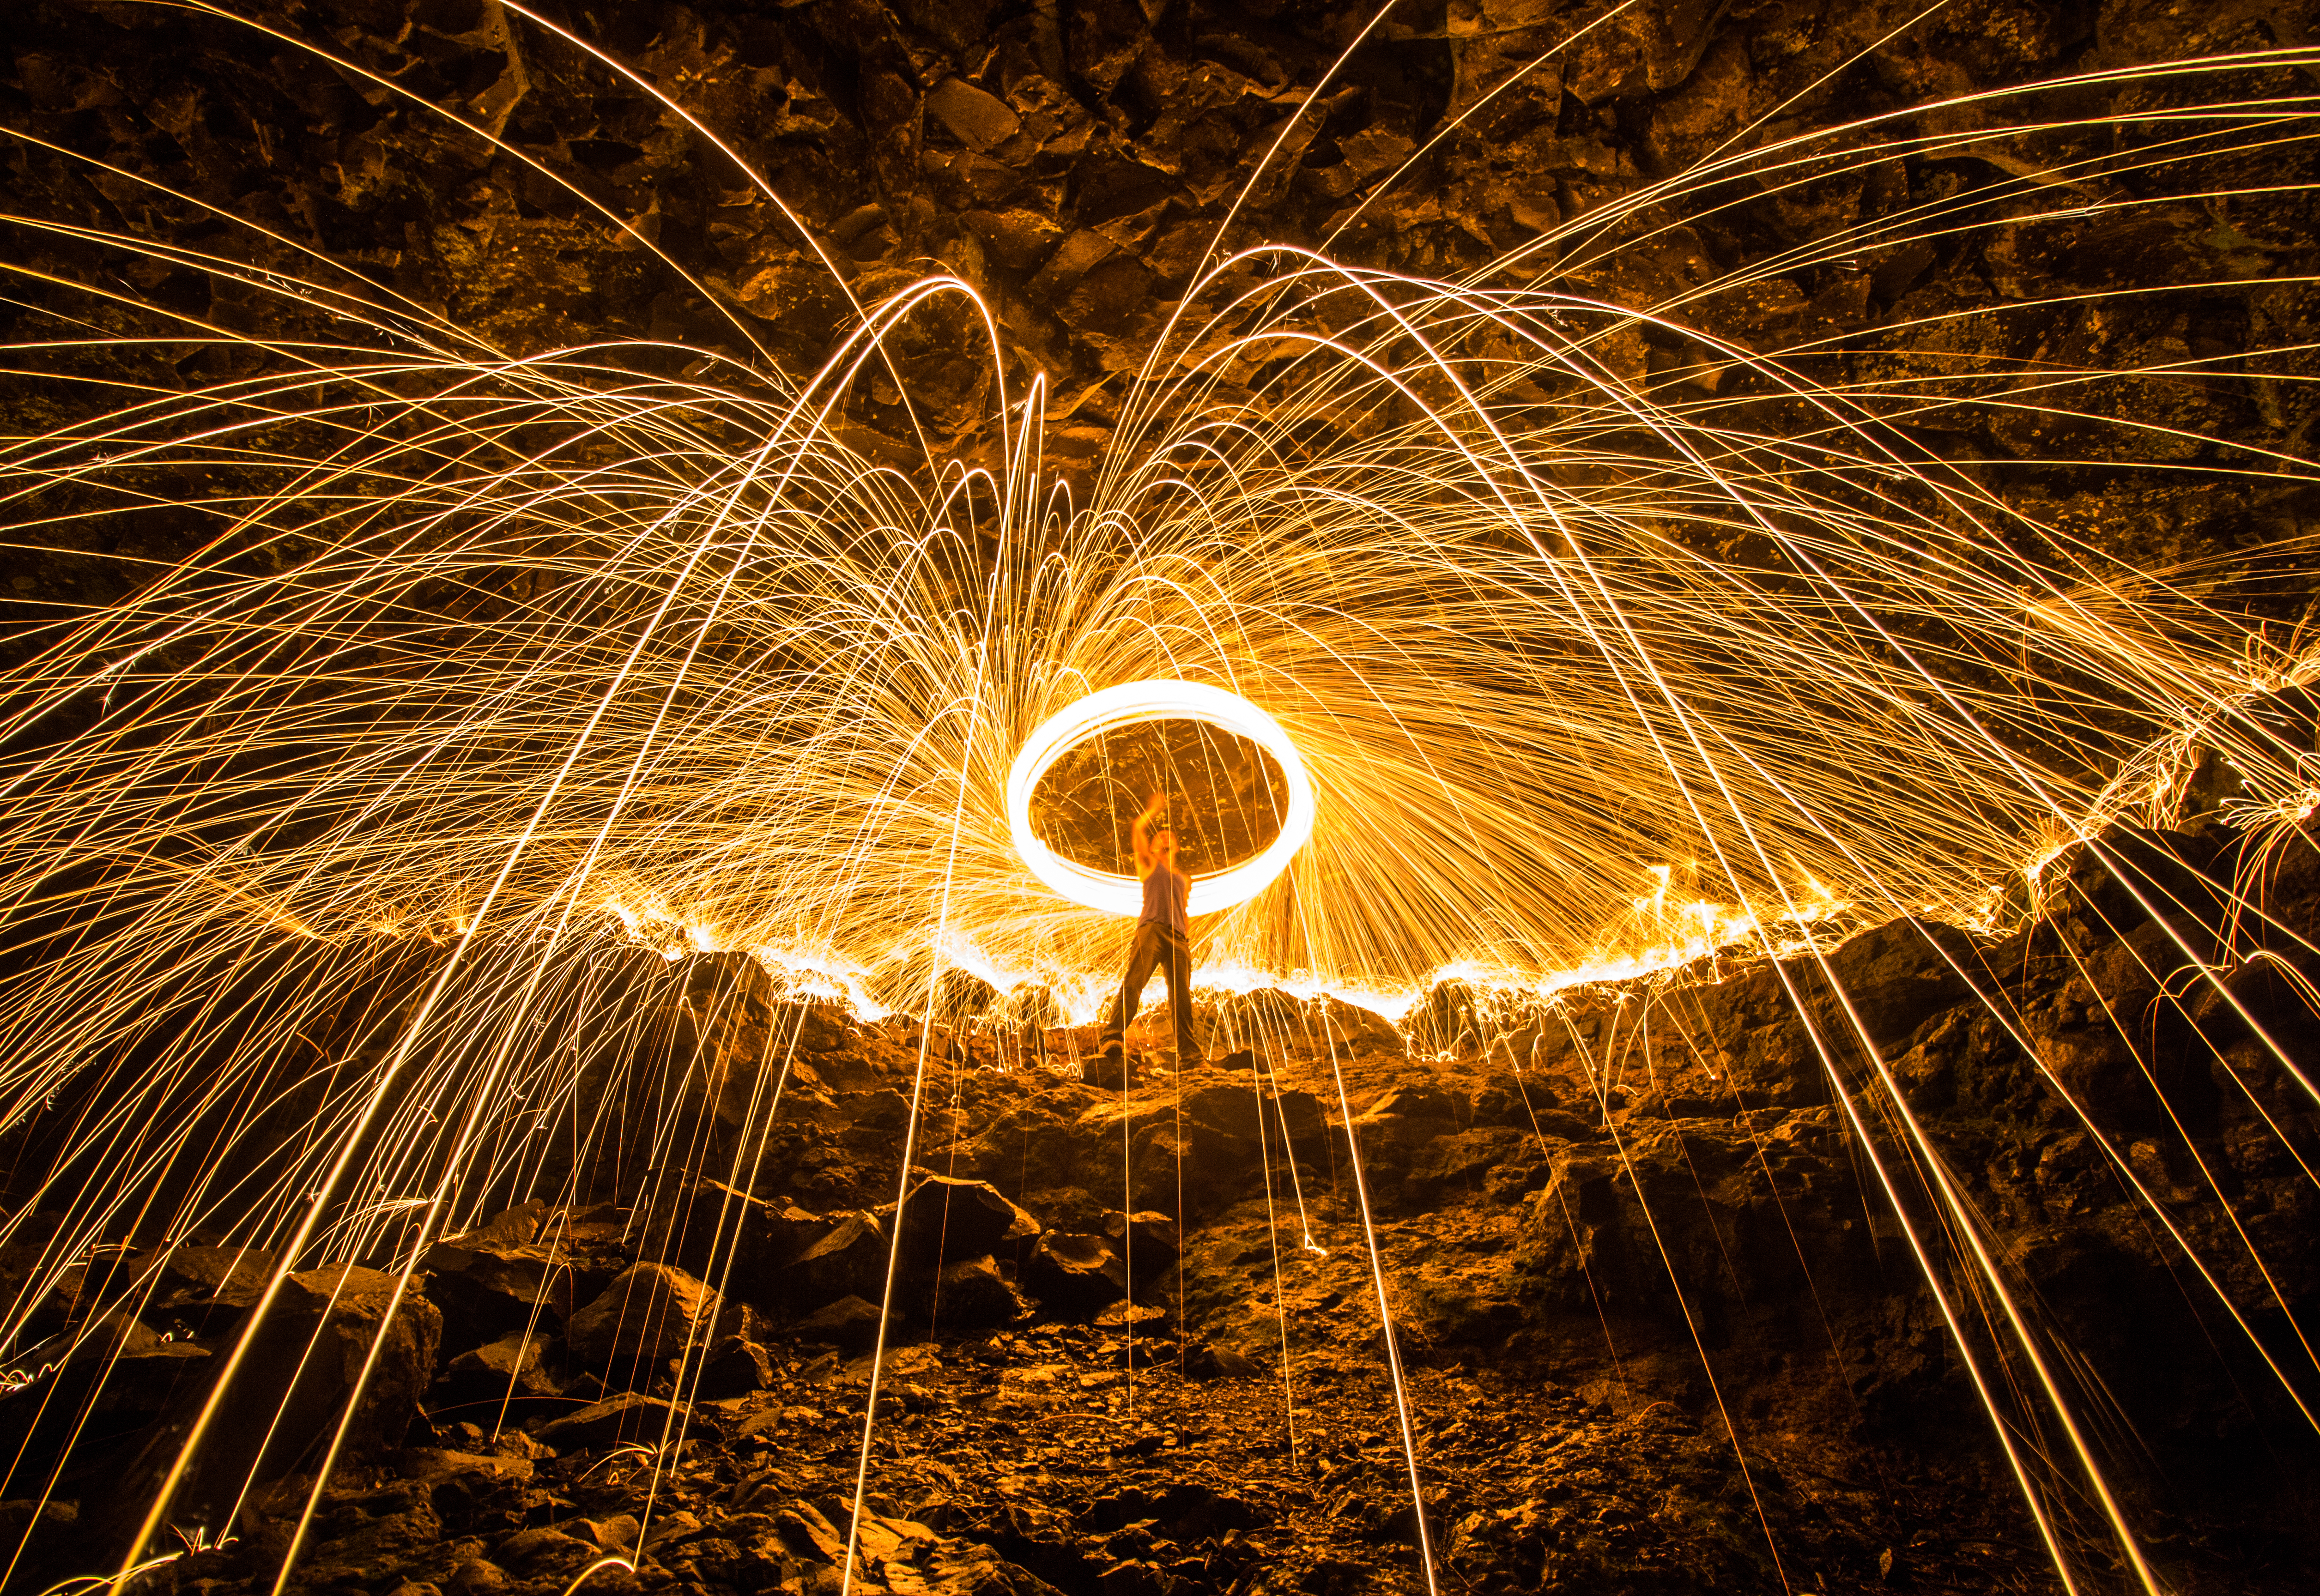 Another of Rod's pieces with wire wool